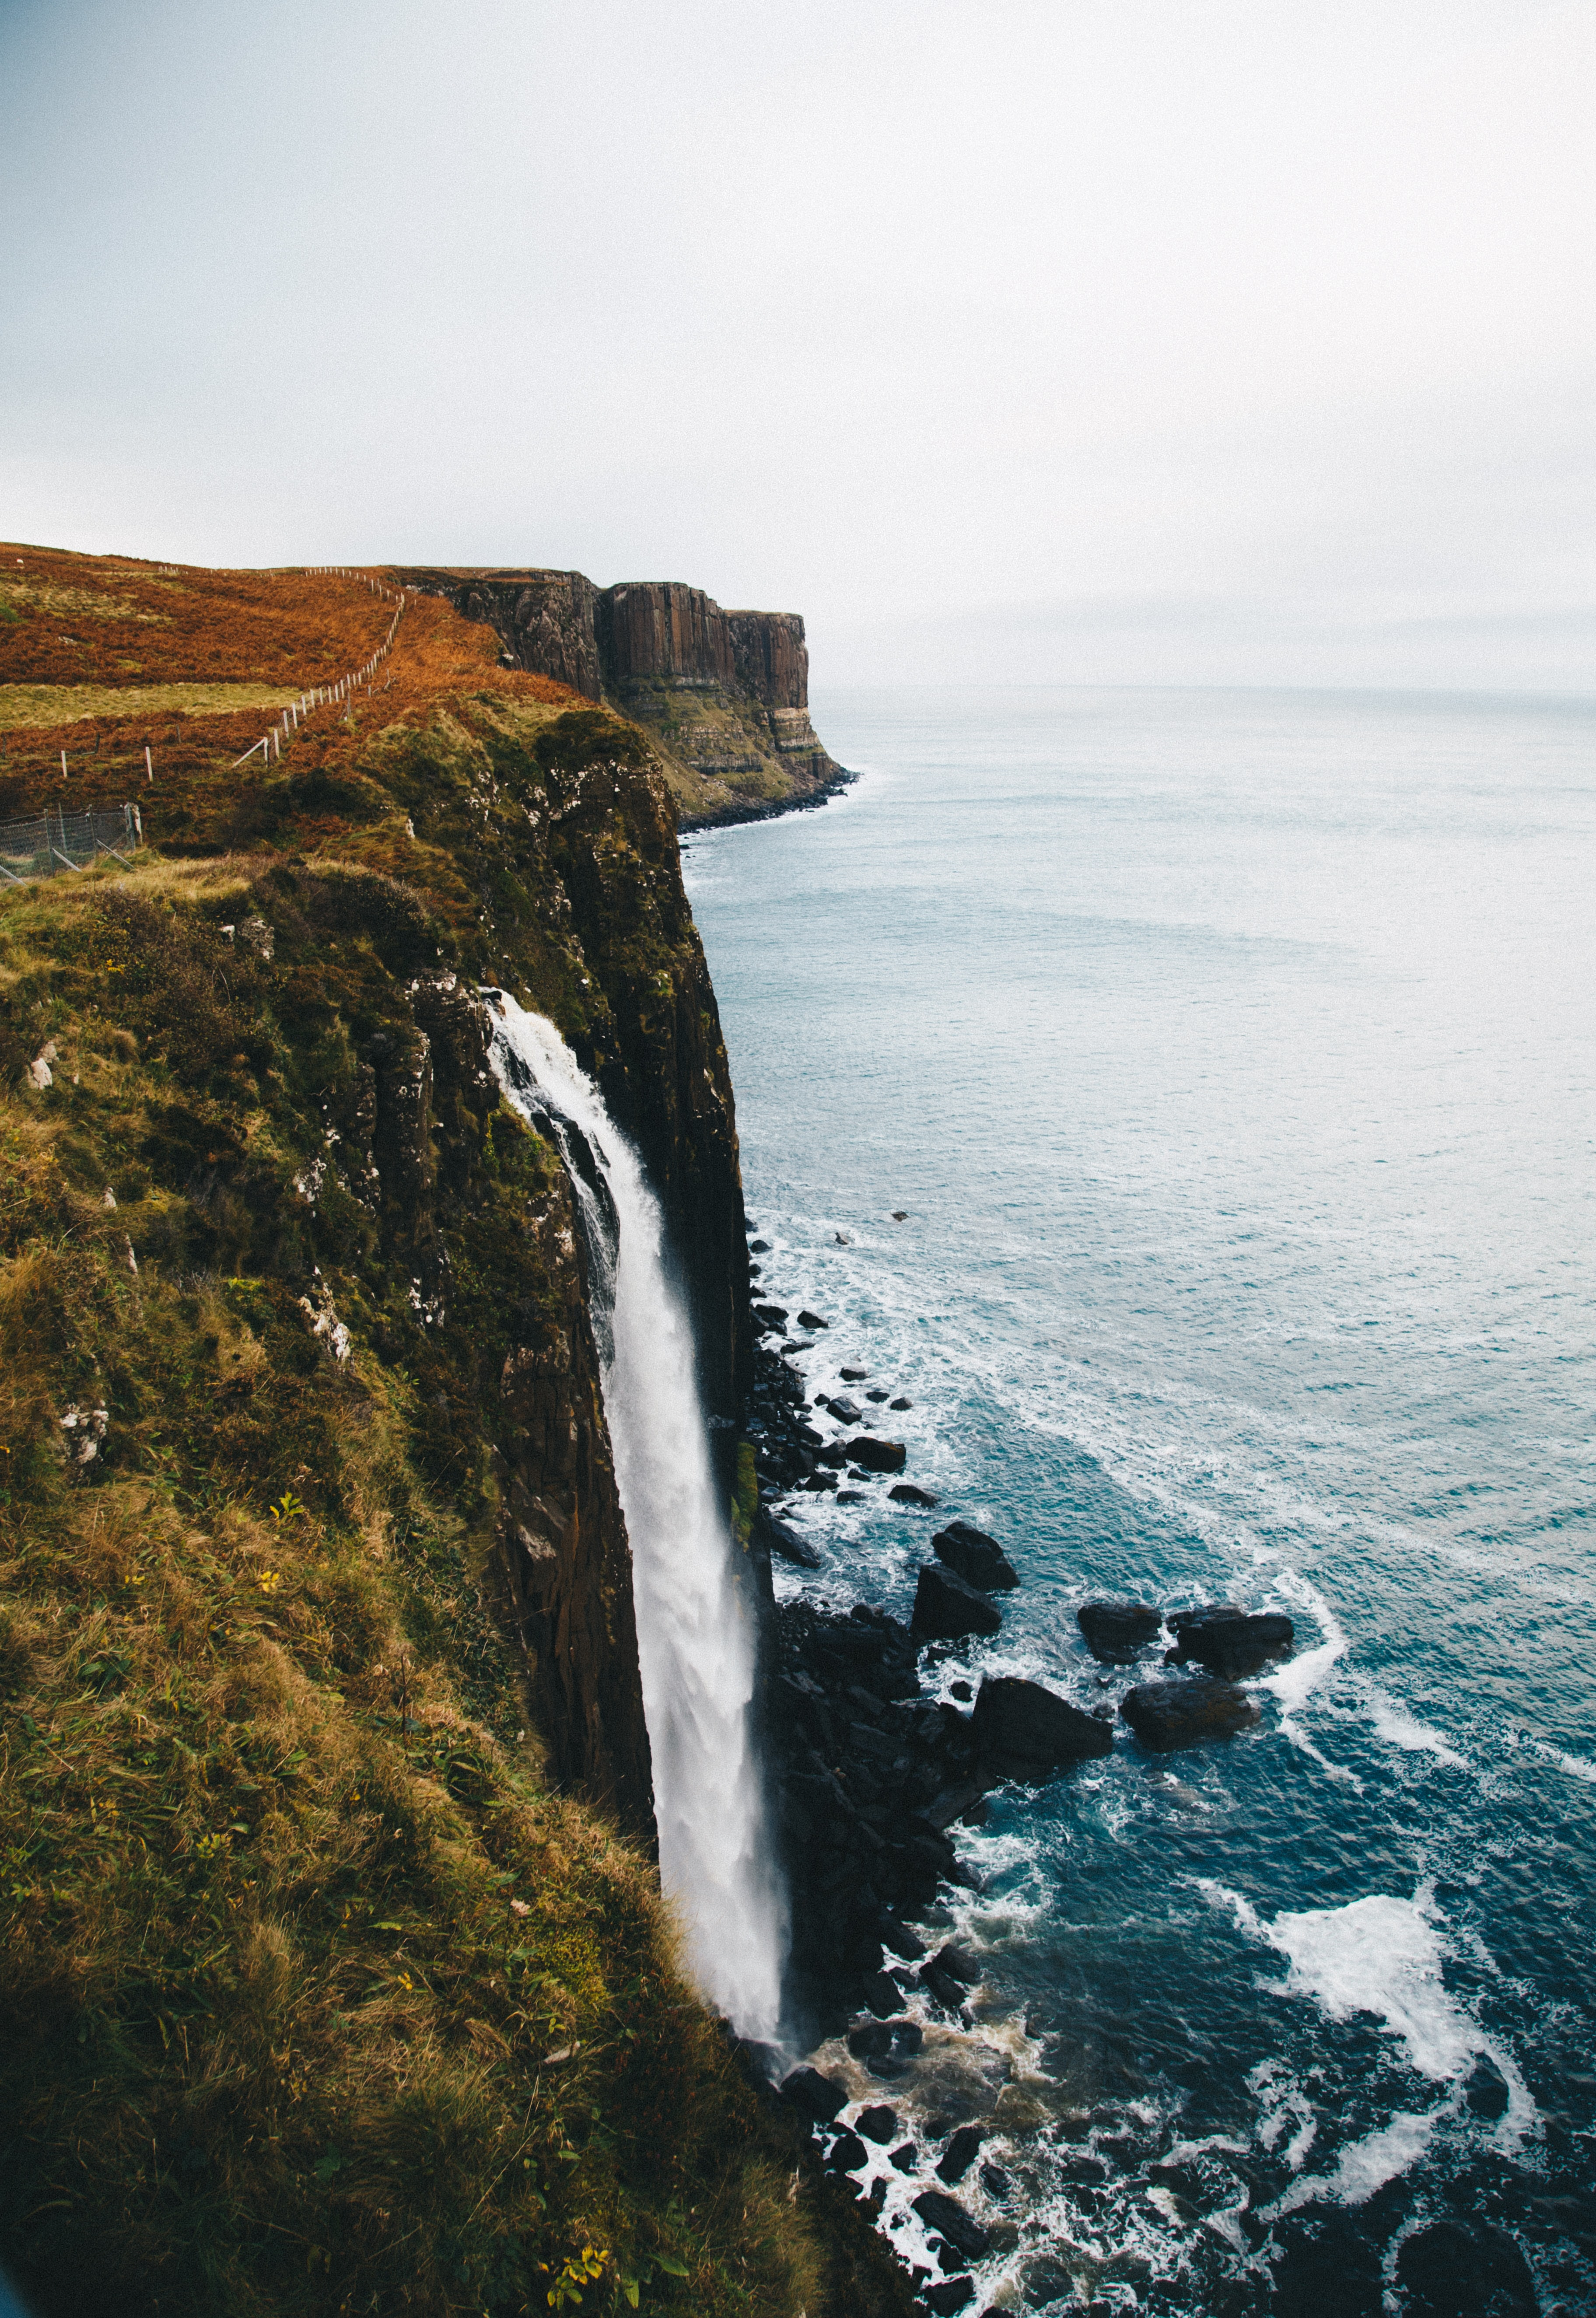 waterfalls in the cliff leading towards the ocean at daytime